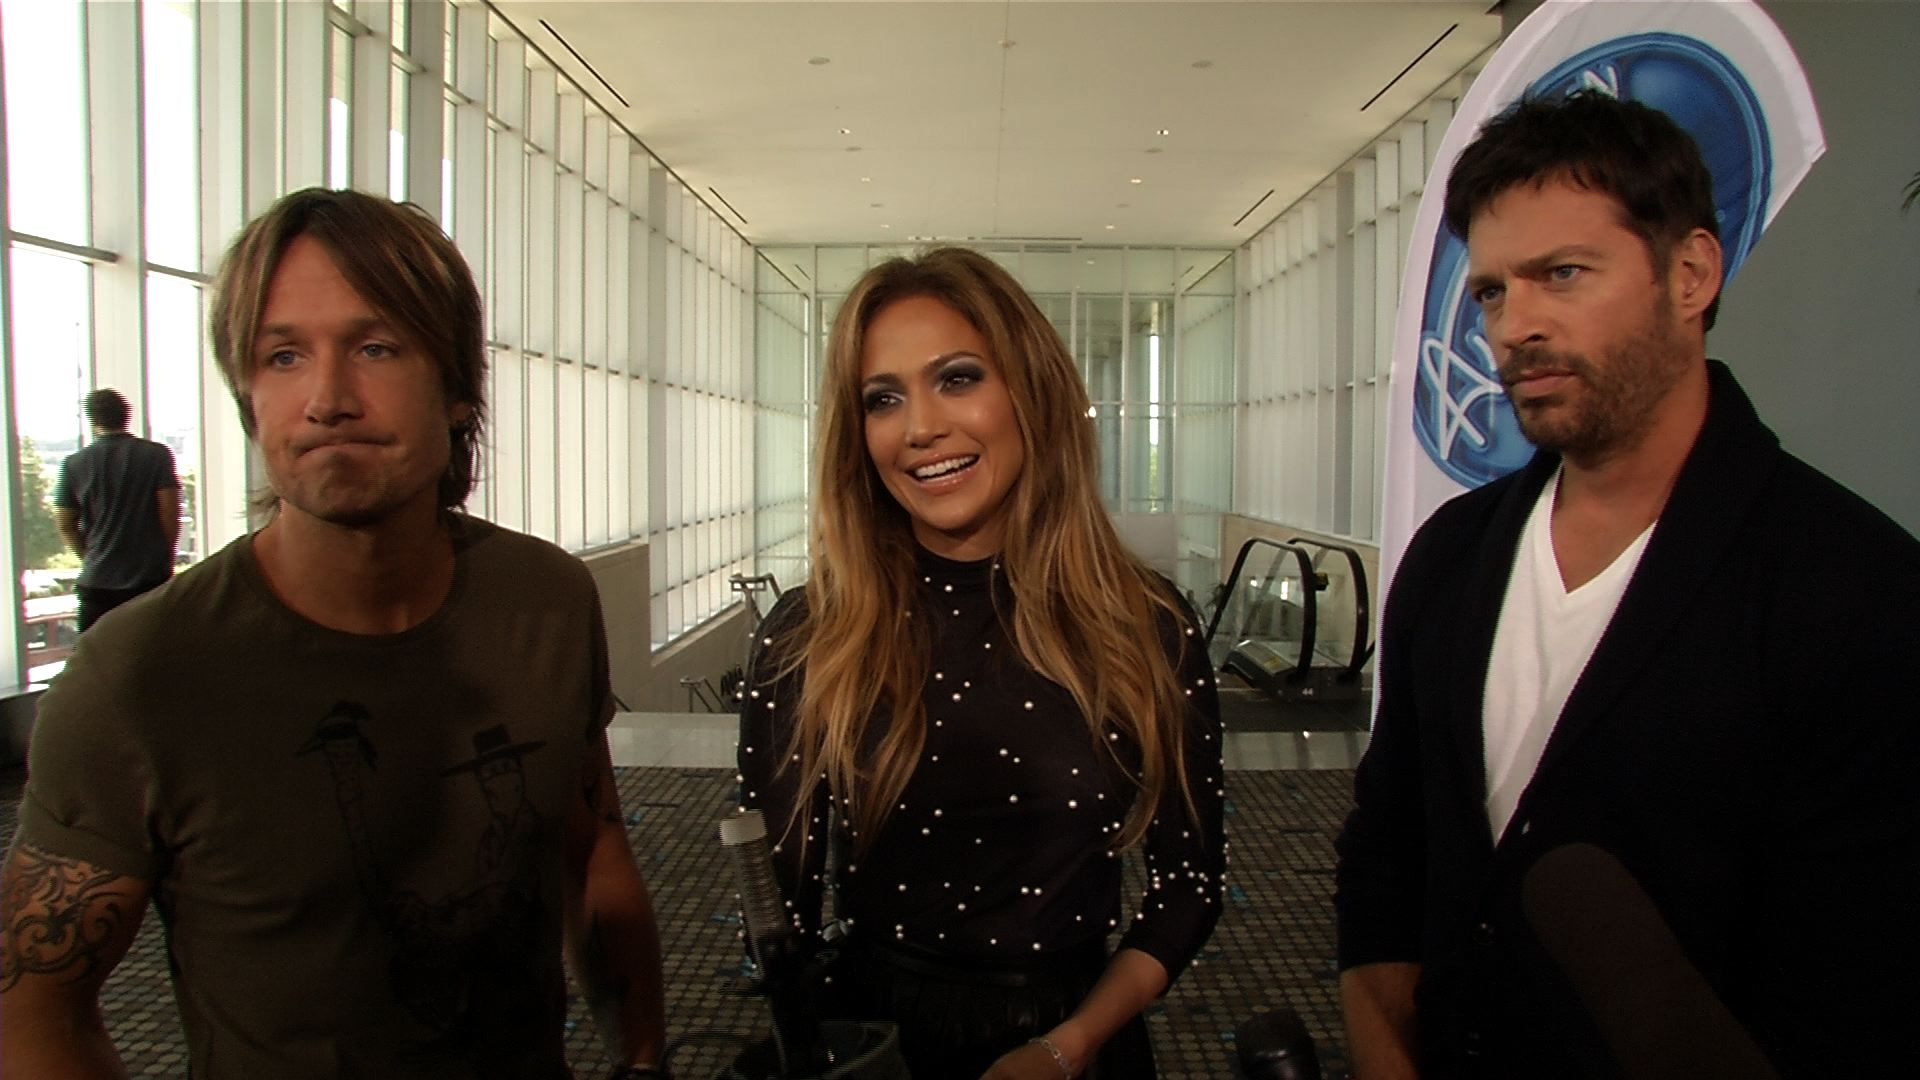 Interview with American Idol judges Keith Urban, Jennifer Lopez and Harry Connick Jr.